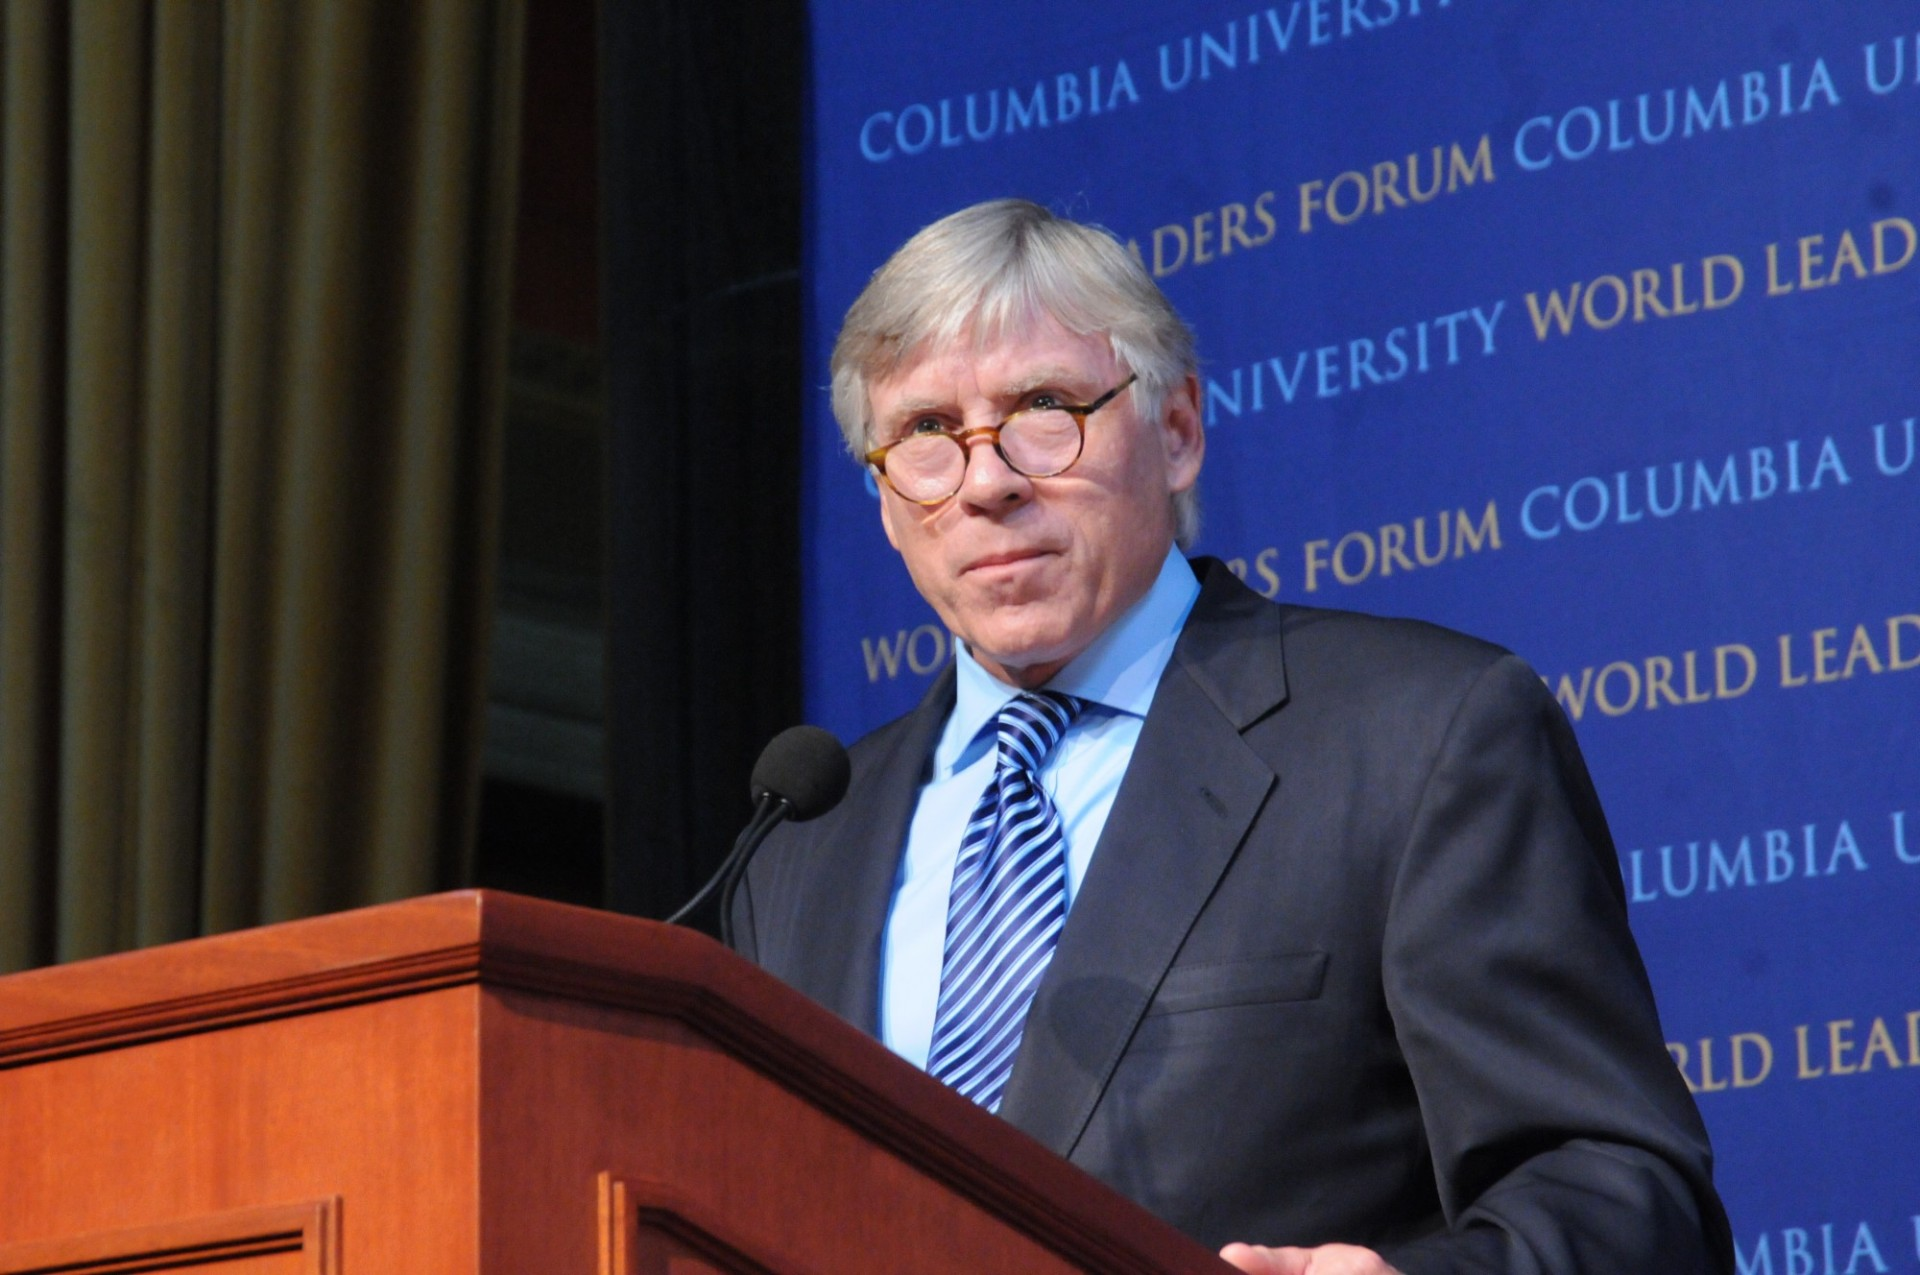 Lee C. Bollinger, President of Columbia University in the City of New York